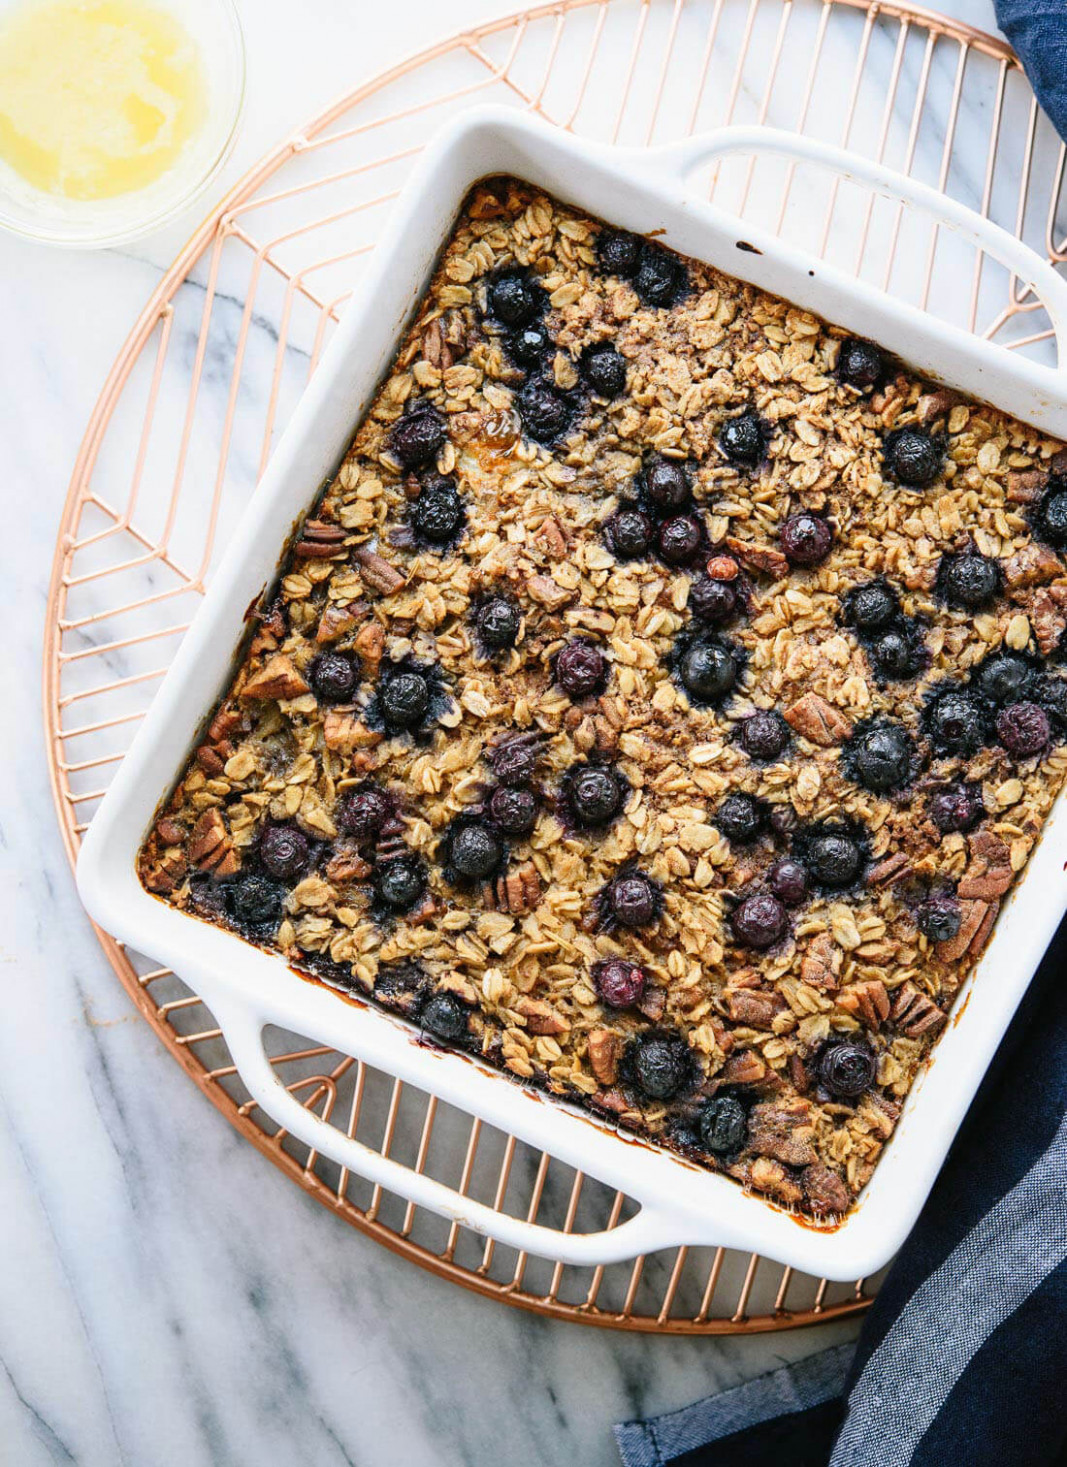 Blueberry Baked Oatmeal - recipes using oats healthy